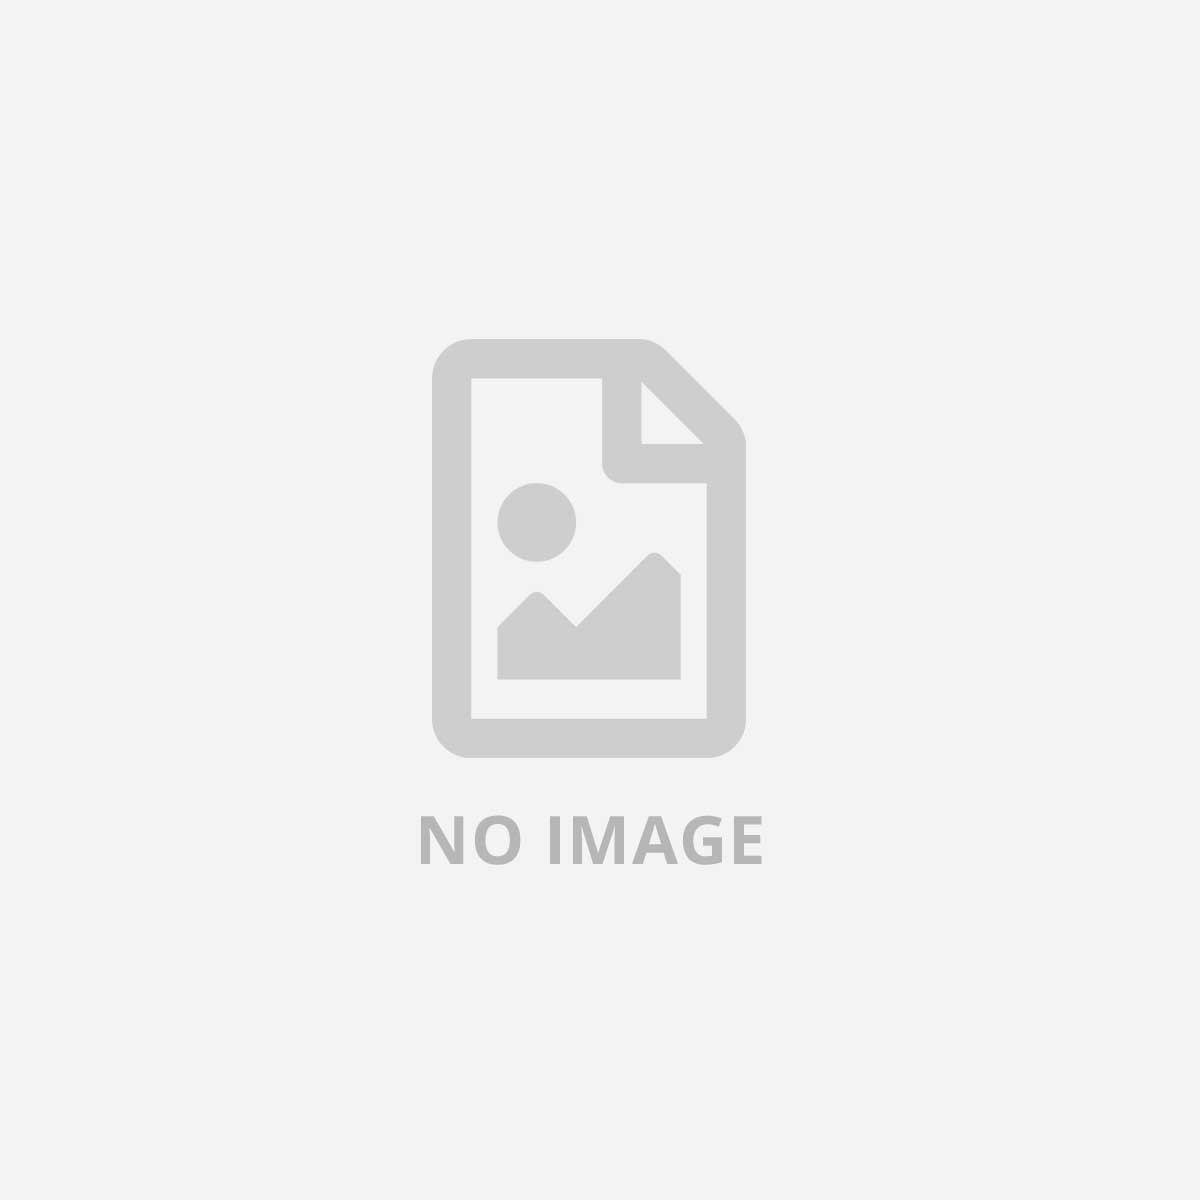 TOM TOM TOMTOM START 52 EUROPA 45 PAESI